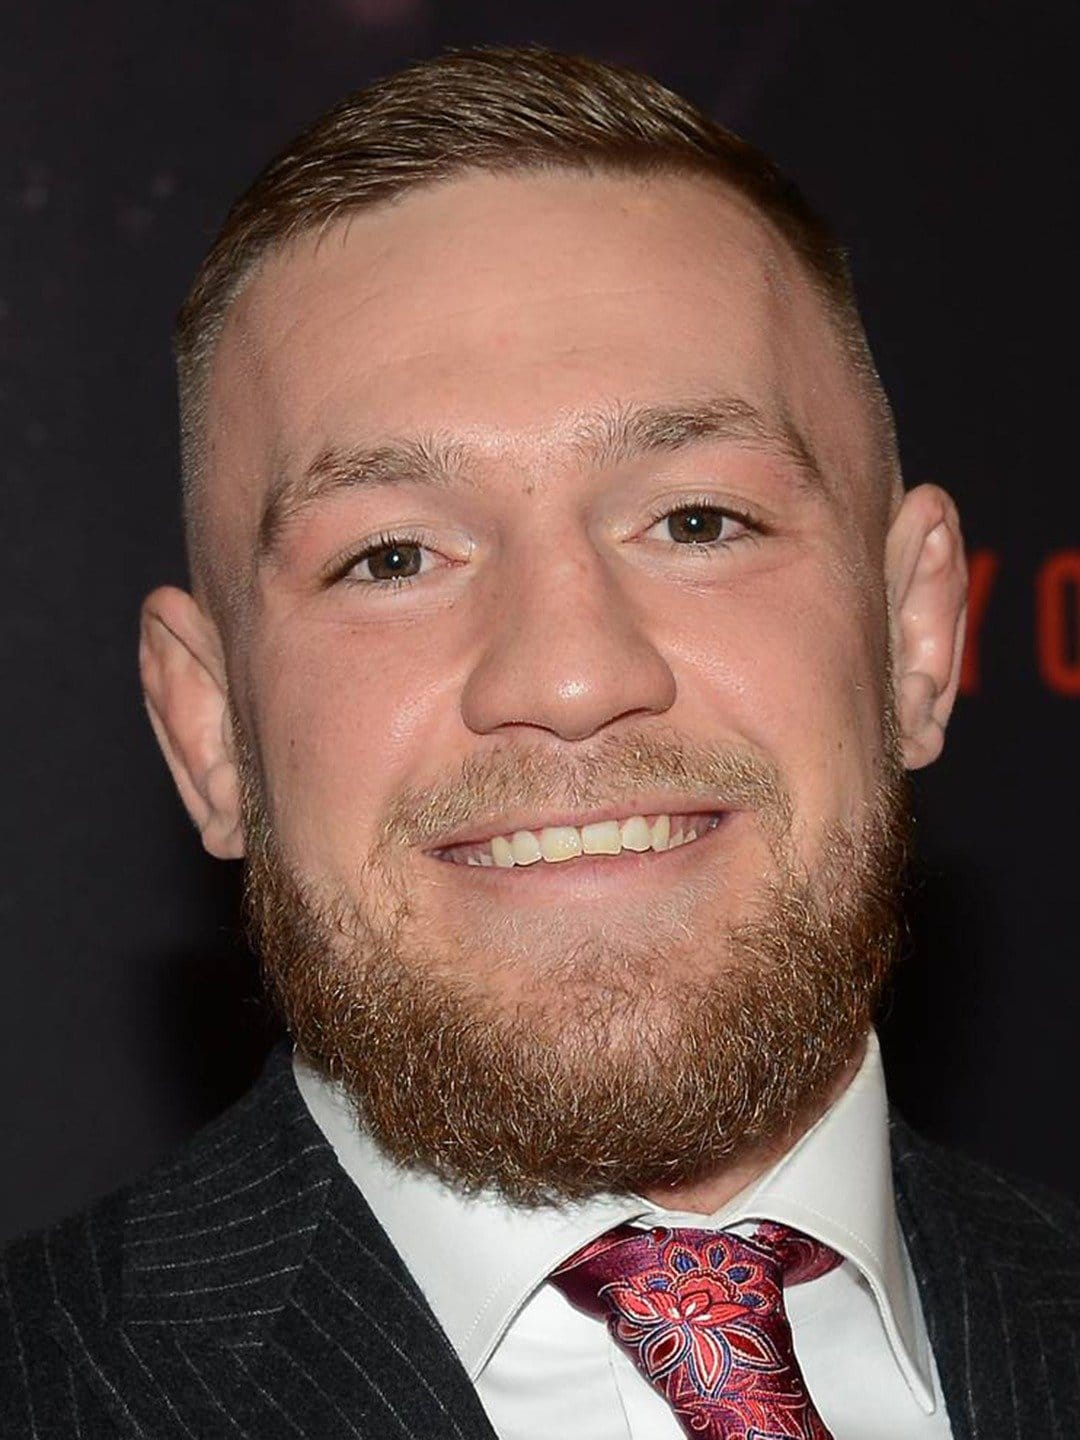 Conor McGregor Irish Martial Artist, Boxer